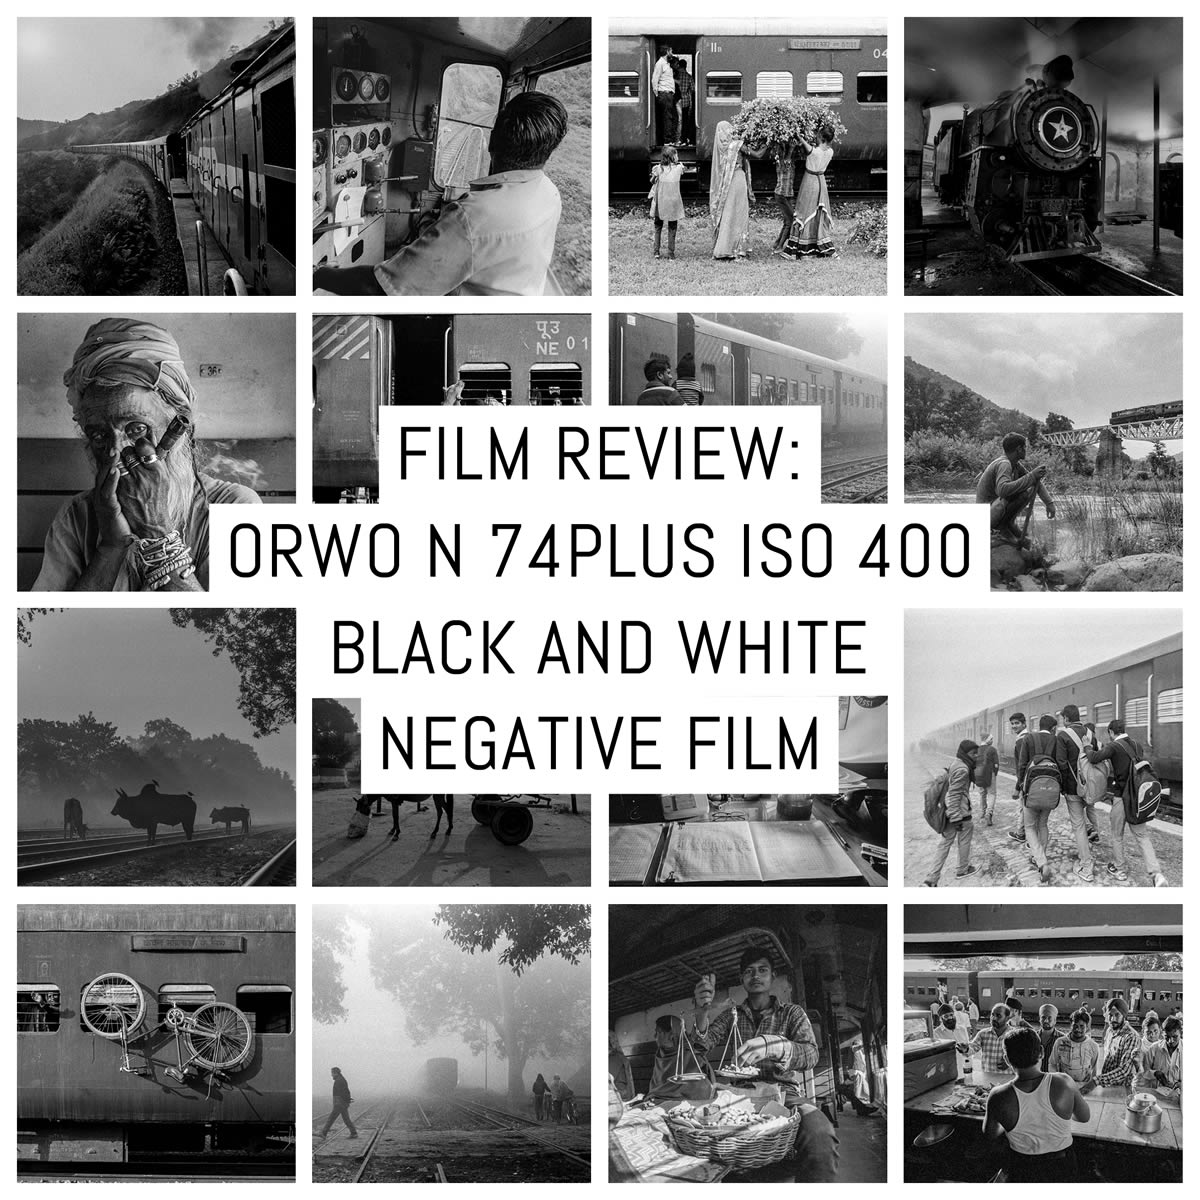 Film review: ORWO N 74plus ISO 400 black and white negative film